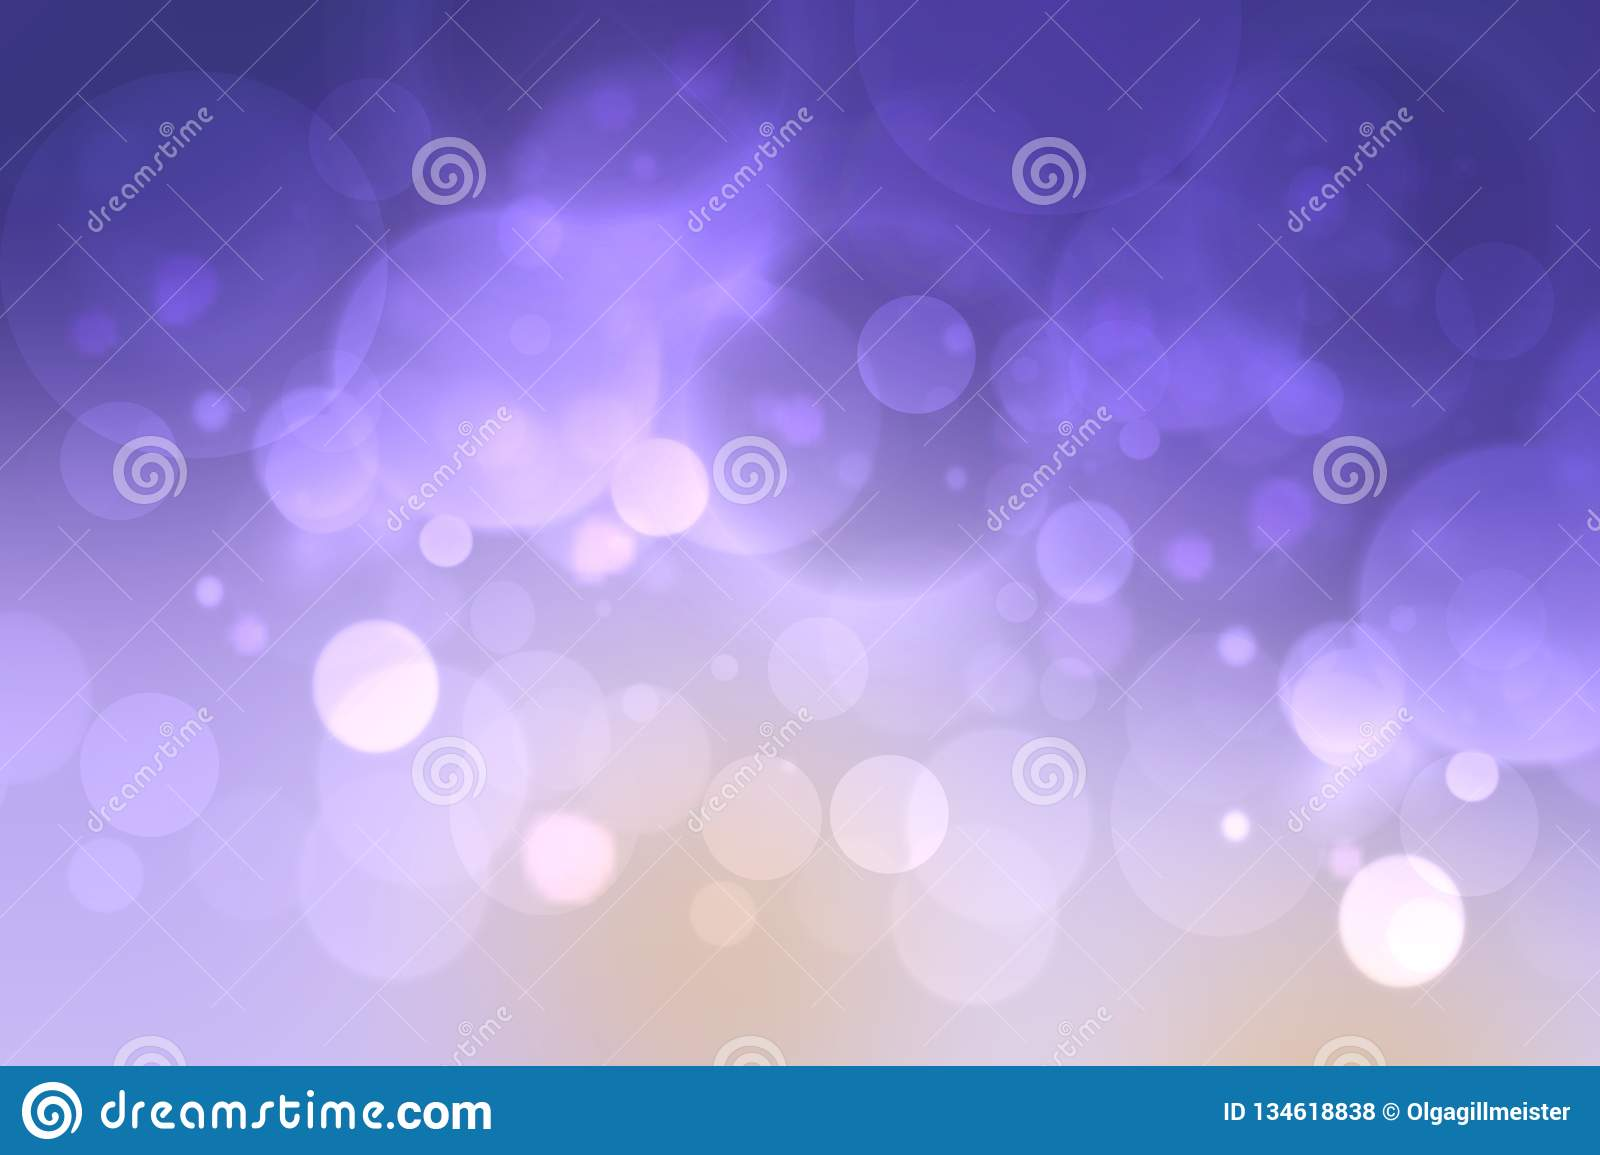 Purple Bright Abstract Bokeh With Colorful Circles  Template For